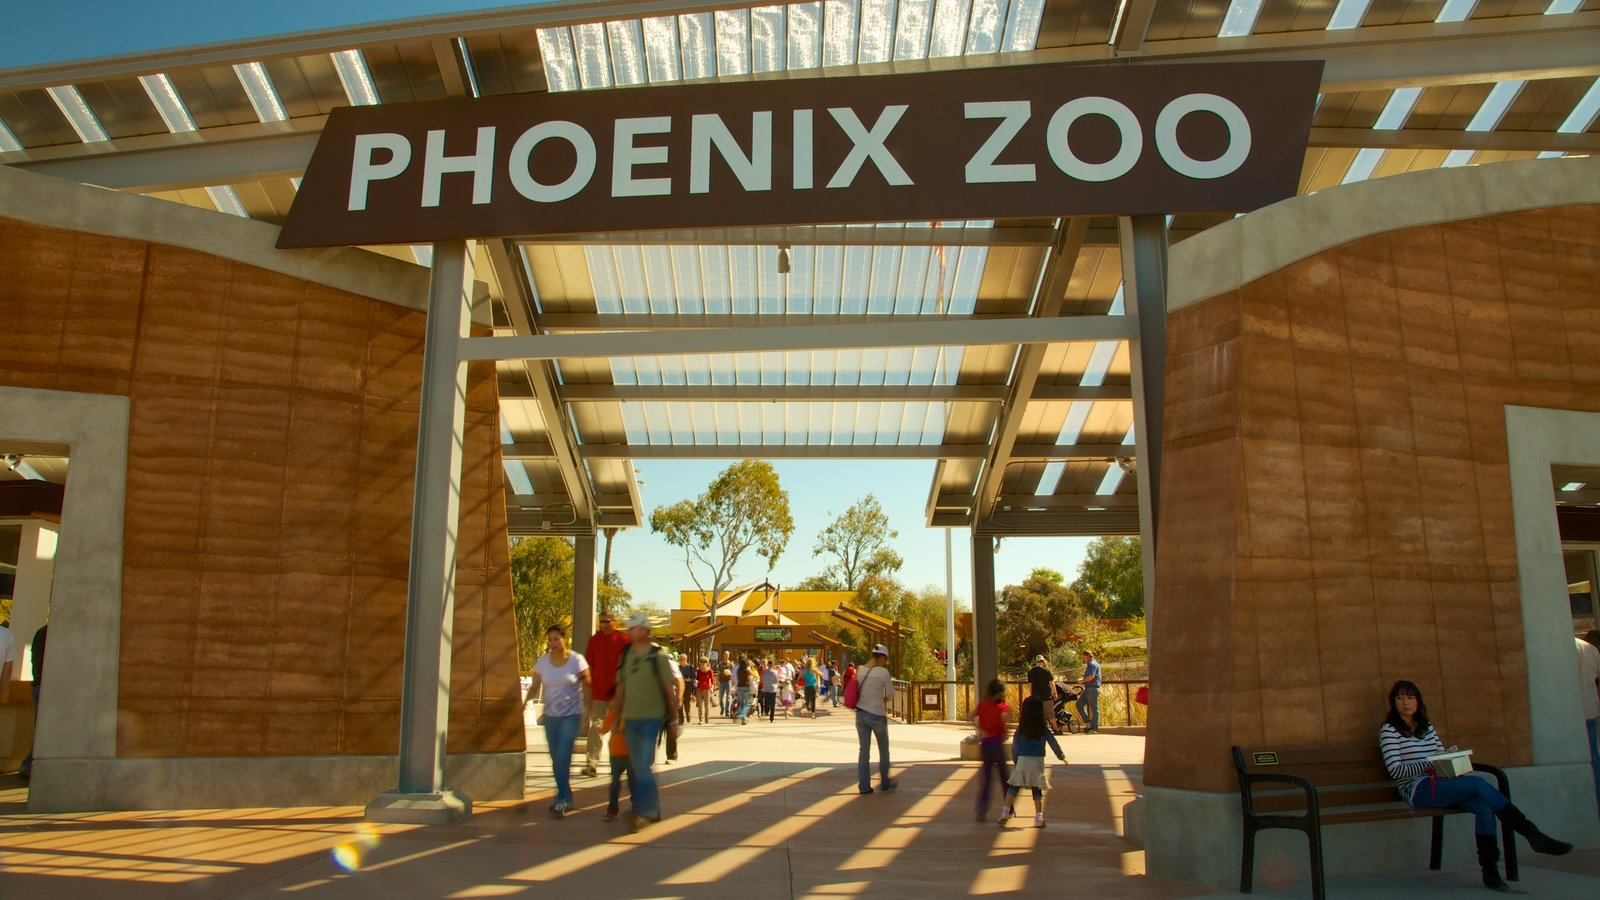 New Phoenix Zoo Coupons, Promo Codes April Senior (ages 60+) $5 OffMilitary (ages ) $5 Off – discount applies only to identified cardholdersStudent (ages ) $5 Off – discount applies only to identified cardholders.